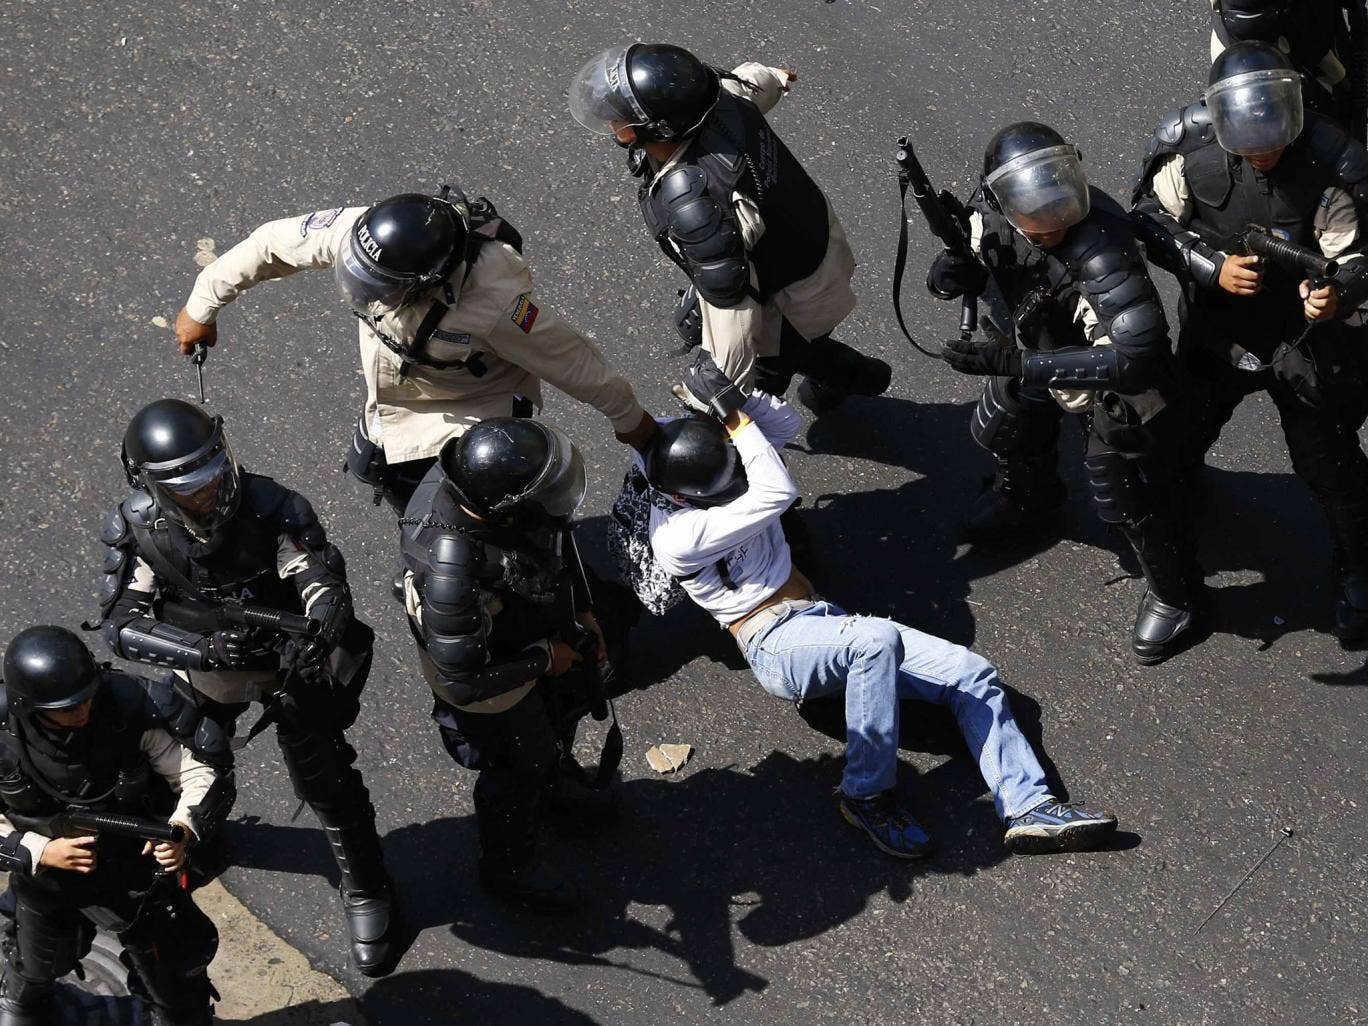 A demonstrator is detained after jumping over a riot police line during an anti-government protest in Caracas